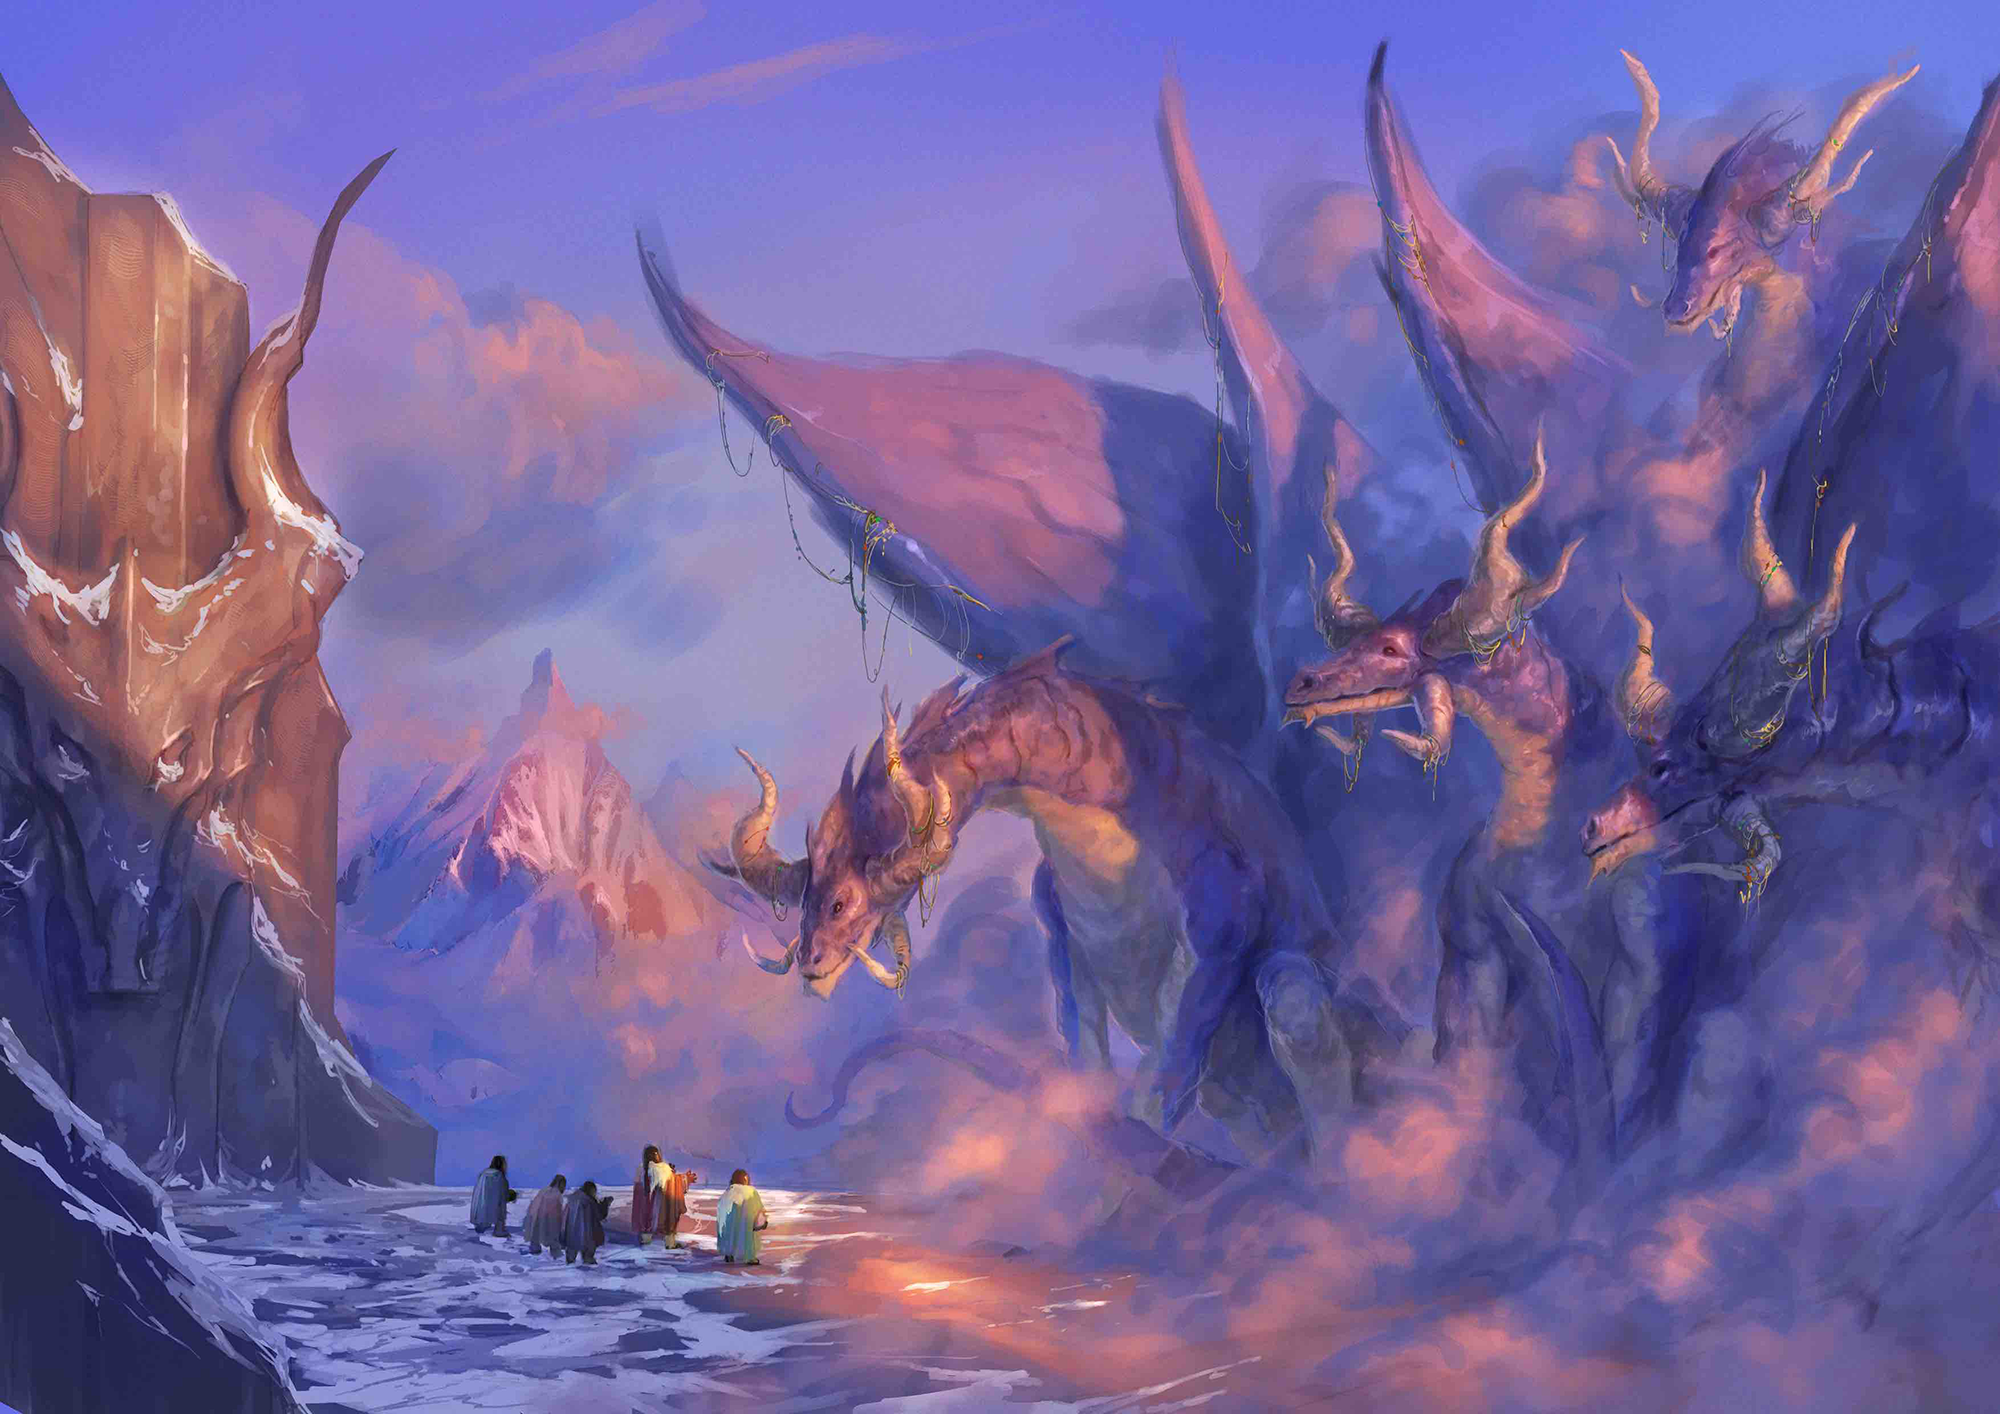 Illustration by Maichol Quinto. Atop a flat mountain peak among the clouds, a small band of dwarves conducts diplomatic relations with an assembly of mighty cloud dragons, each as large as a house.